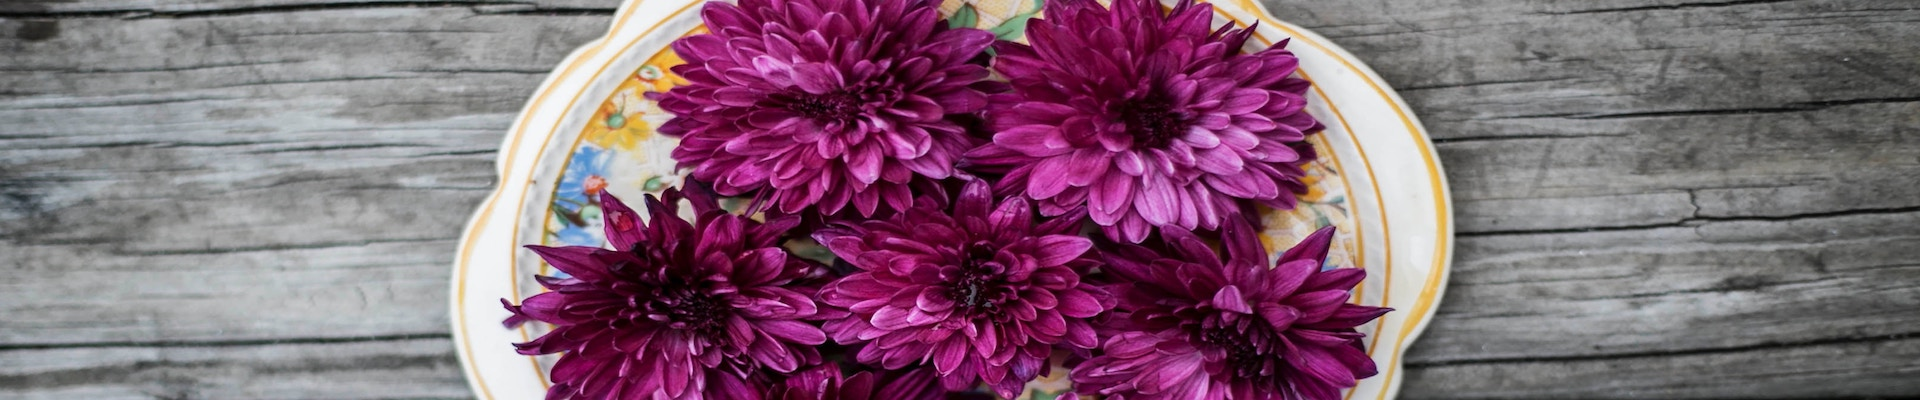 Purple dahlia flower arrangement displayed on a decorative plate